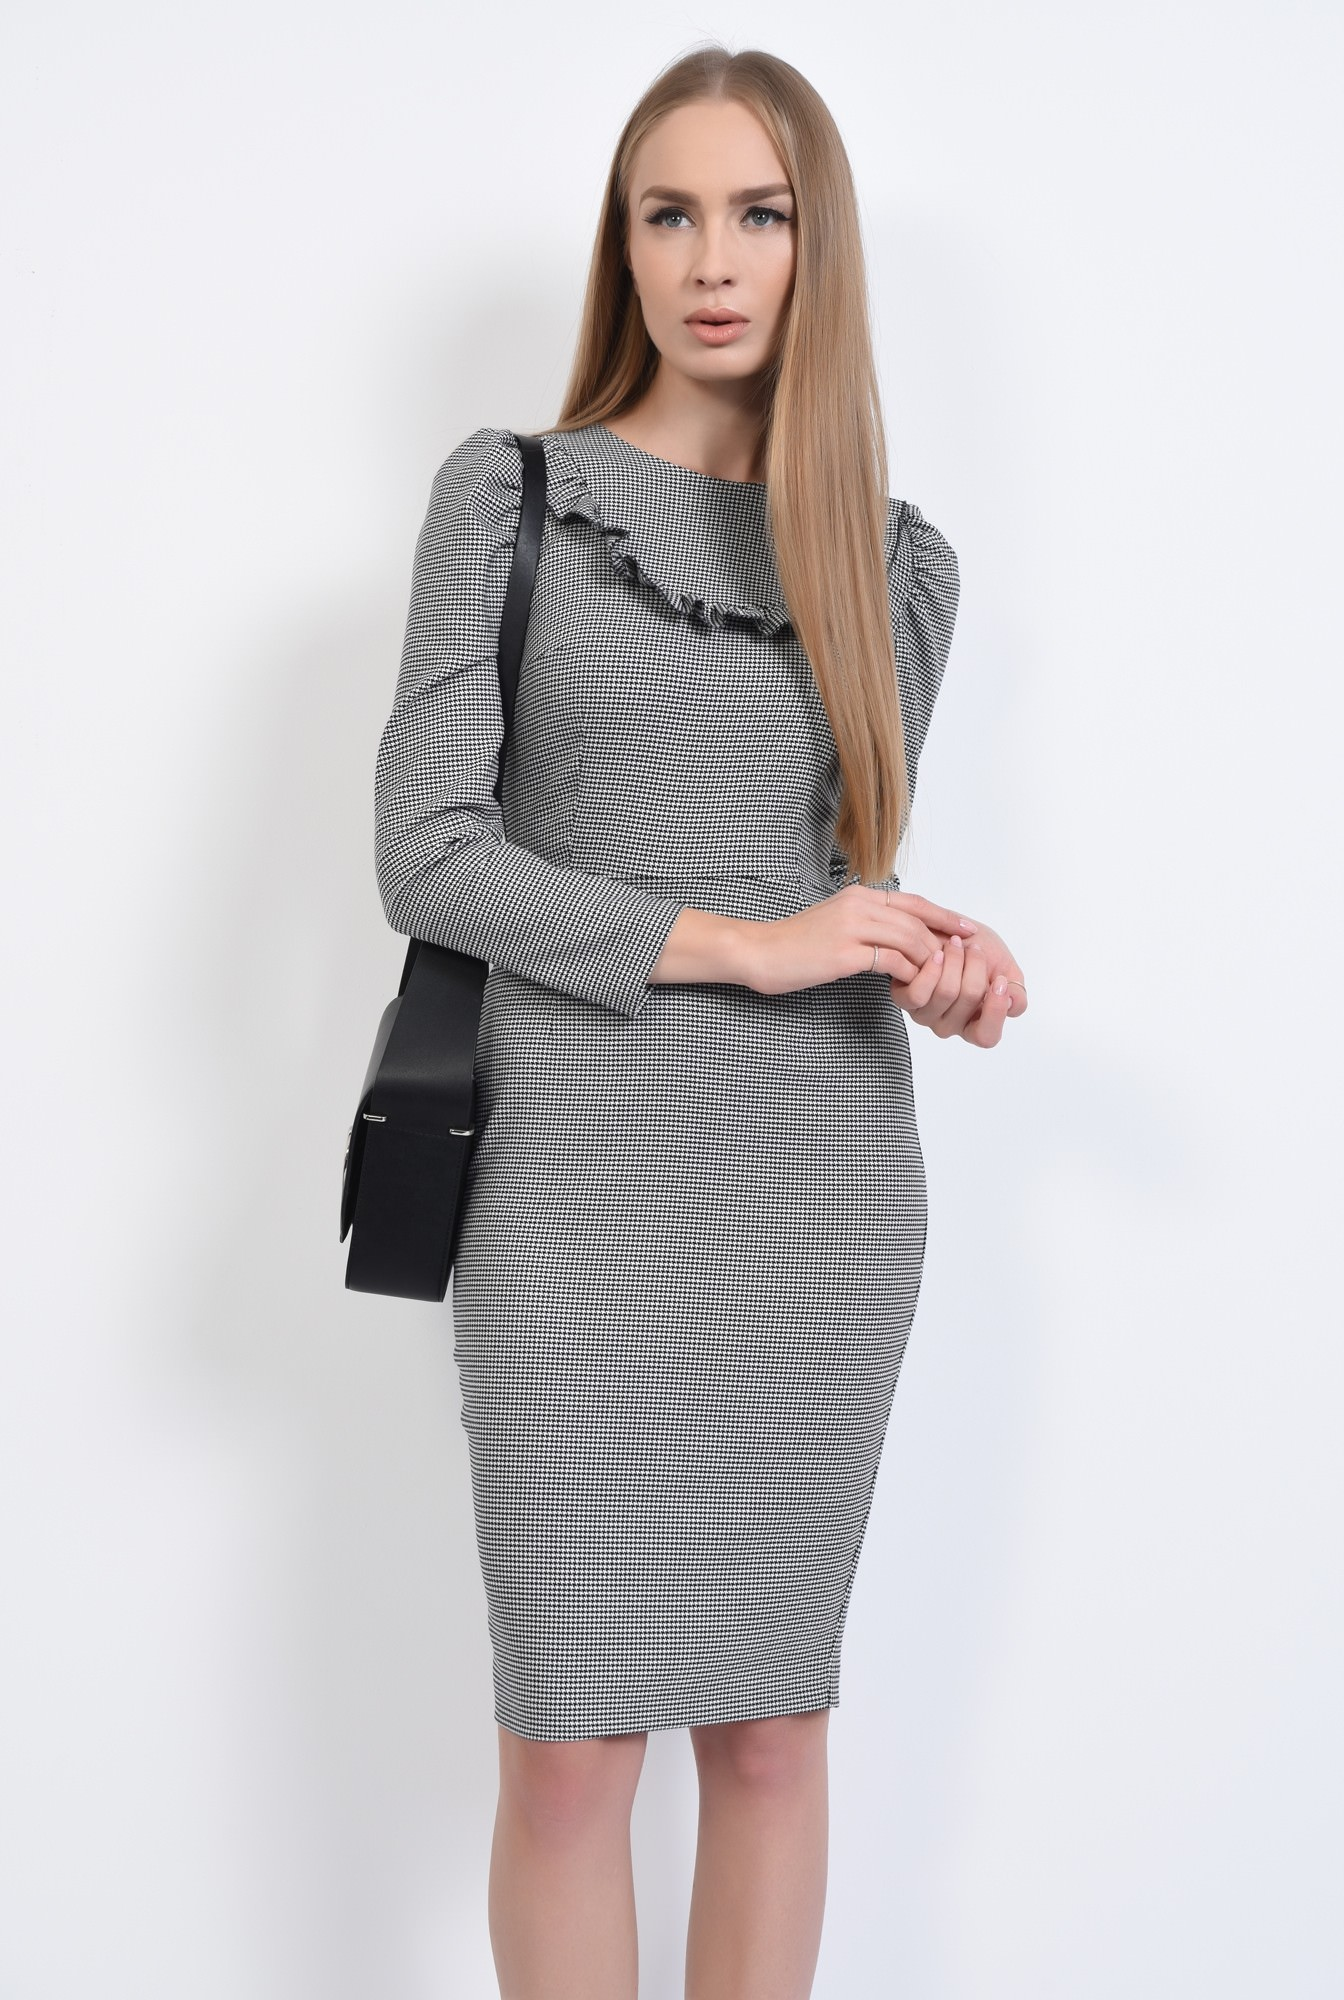 0 - ROCHIE CASUAL CONICA R 463-PEPIT